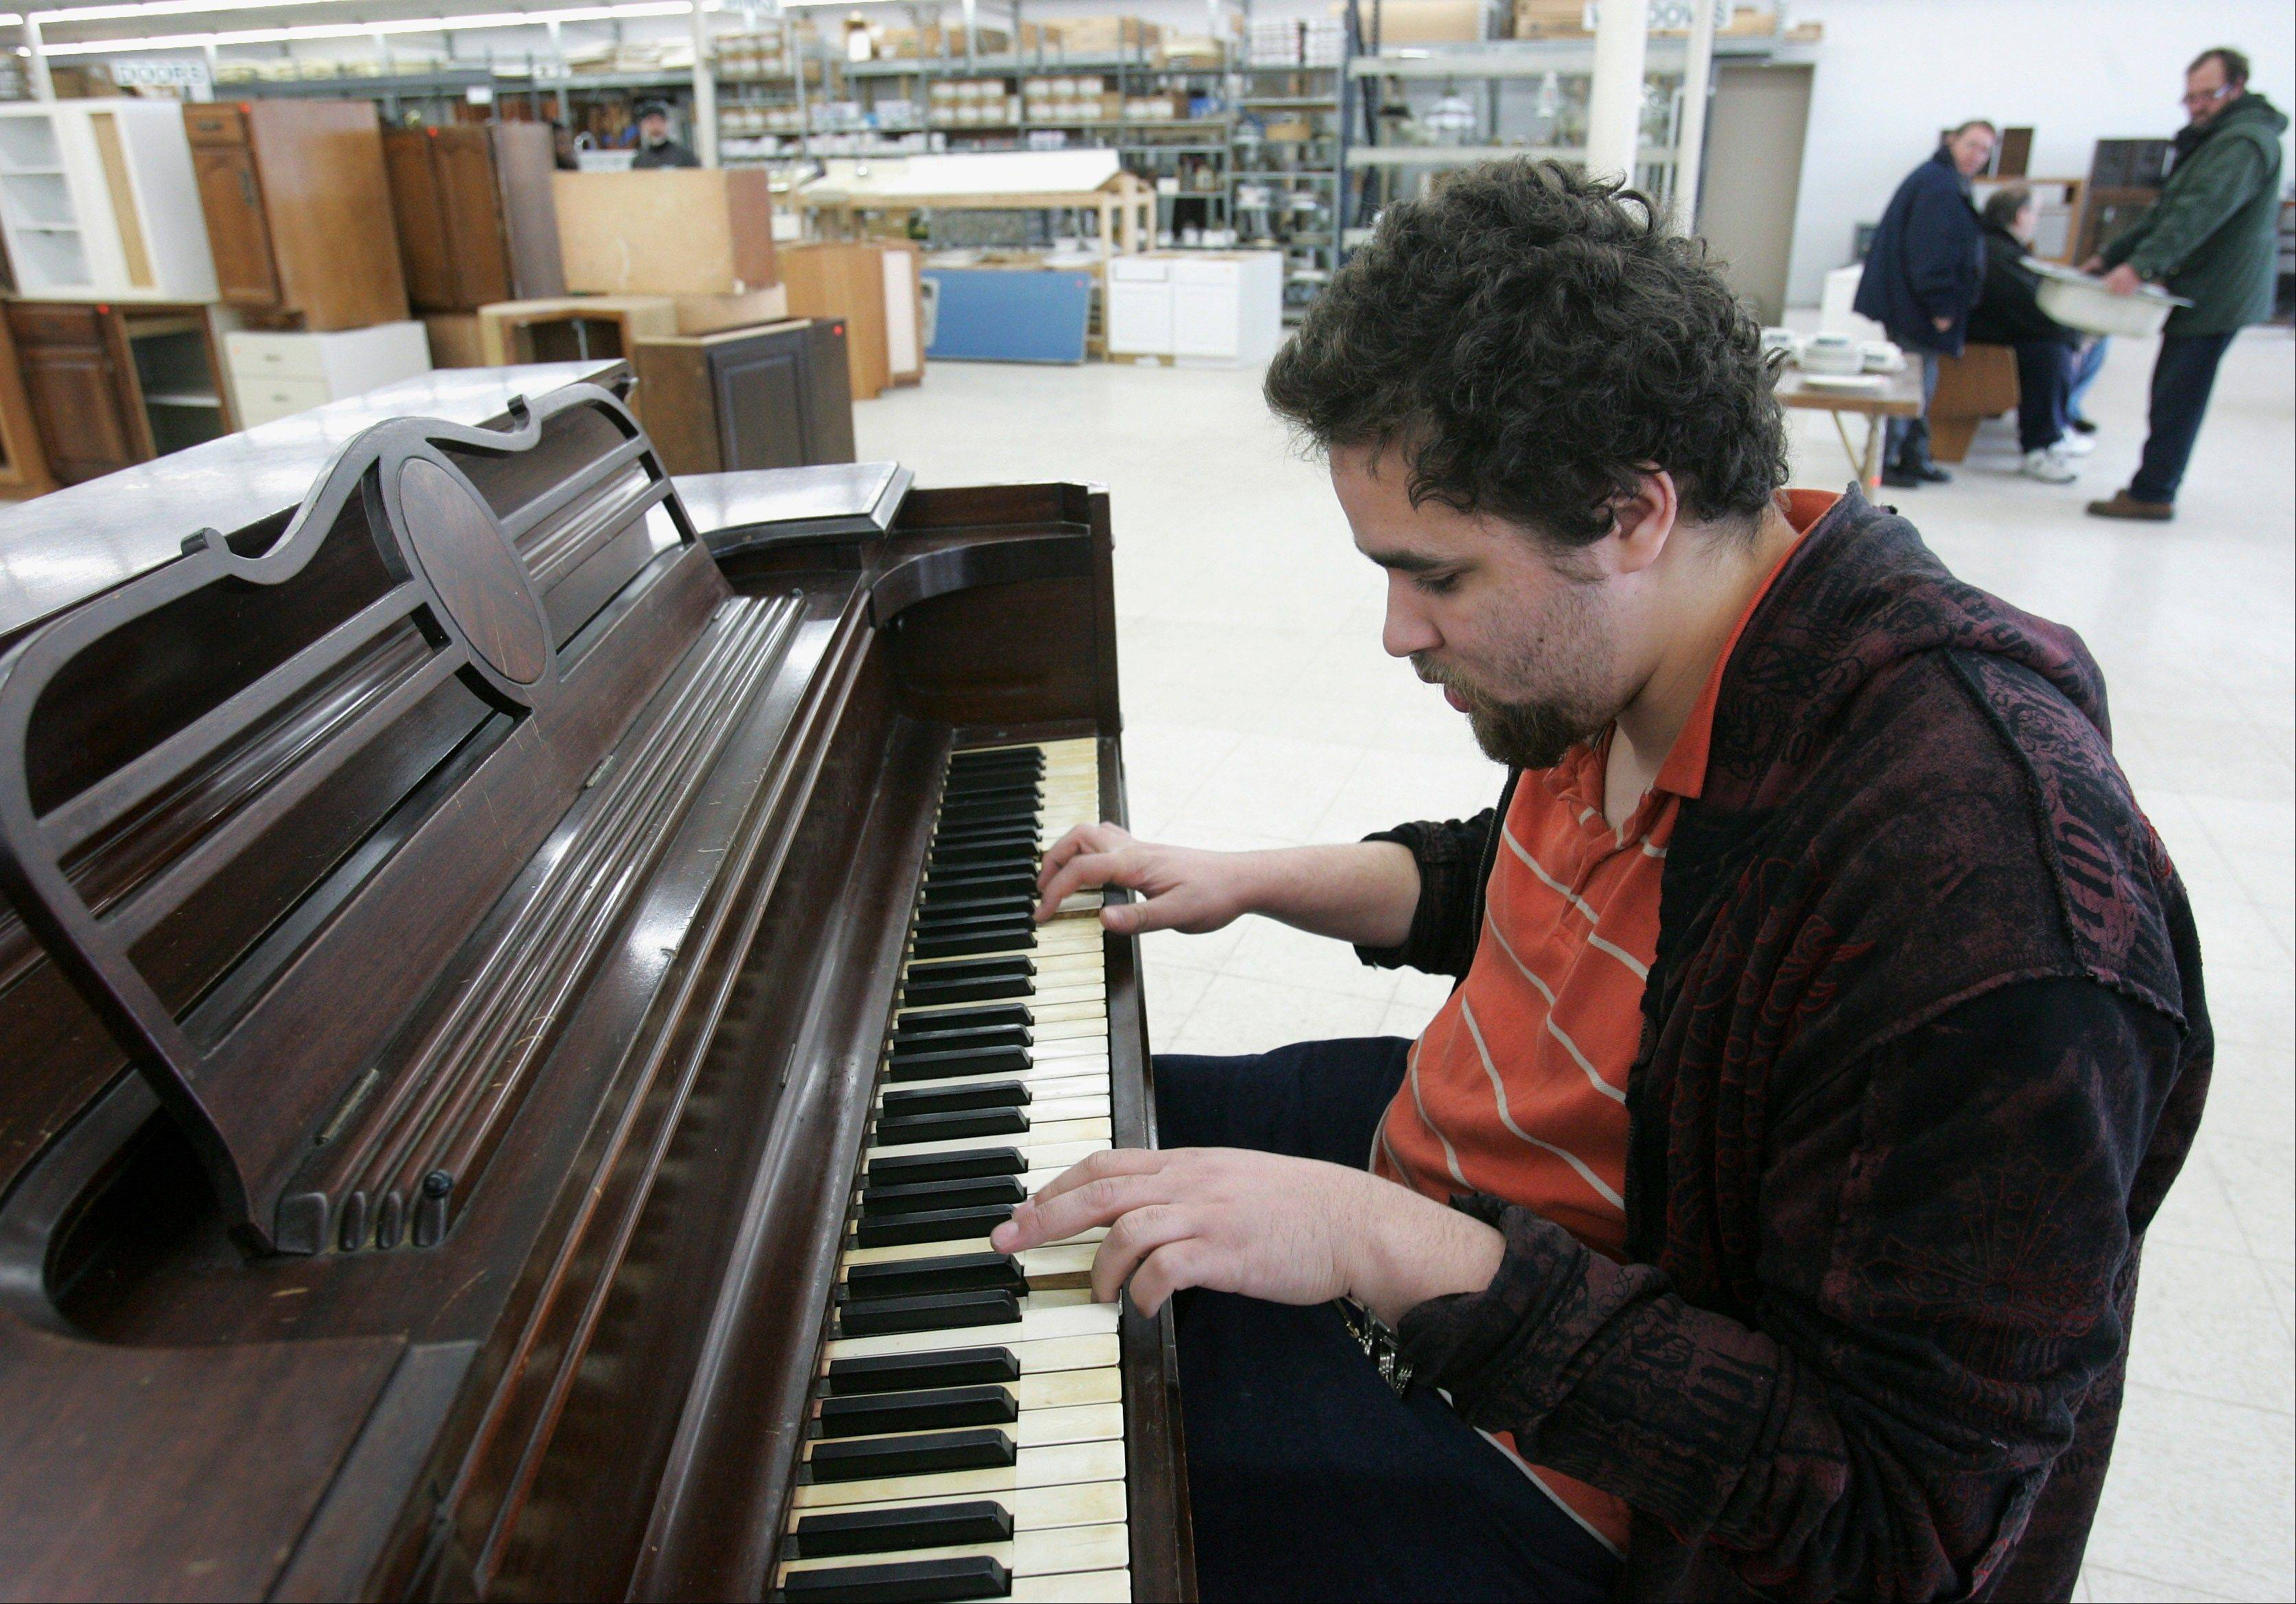 Elijah Londo, 22, who has Asperger syndrome, an autistic spectrum disorder, plays the piano at ReStore in Rockford, Ill. Londo used to work at ReStore, which benefits Rockford Area Habitat for Humanity. His foster mother J.